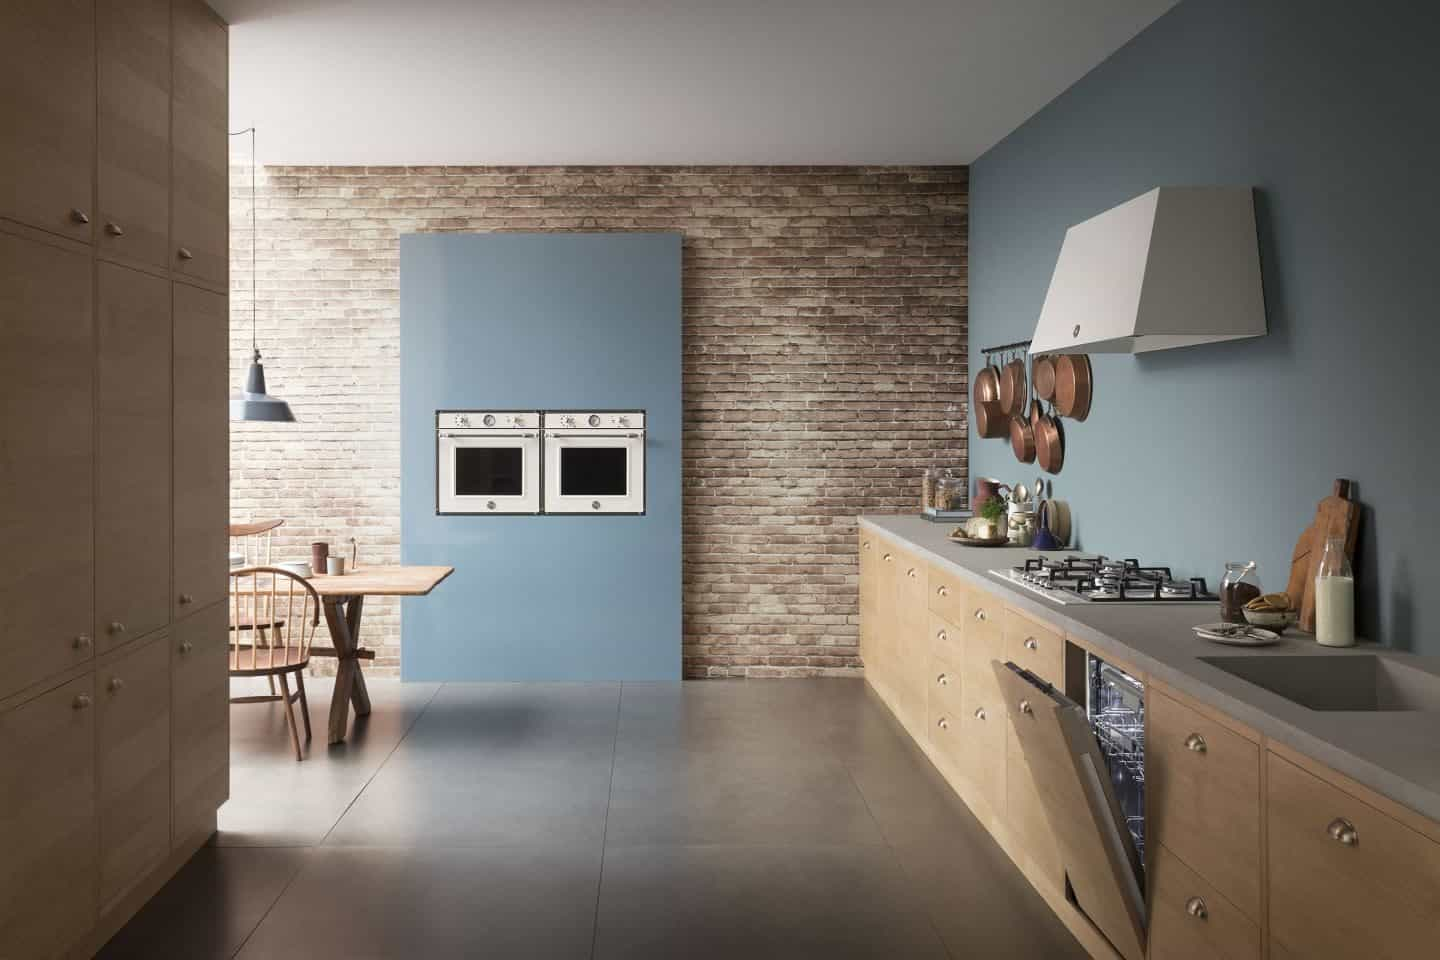 The Bertazzoni built-in appliance range shown in situ in a modern kitchen.